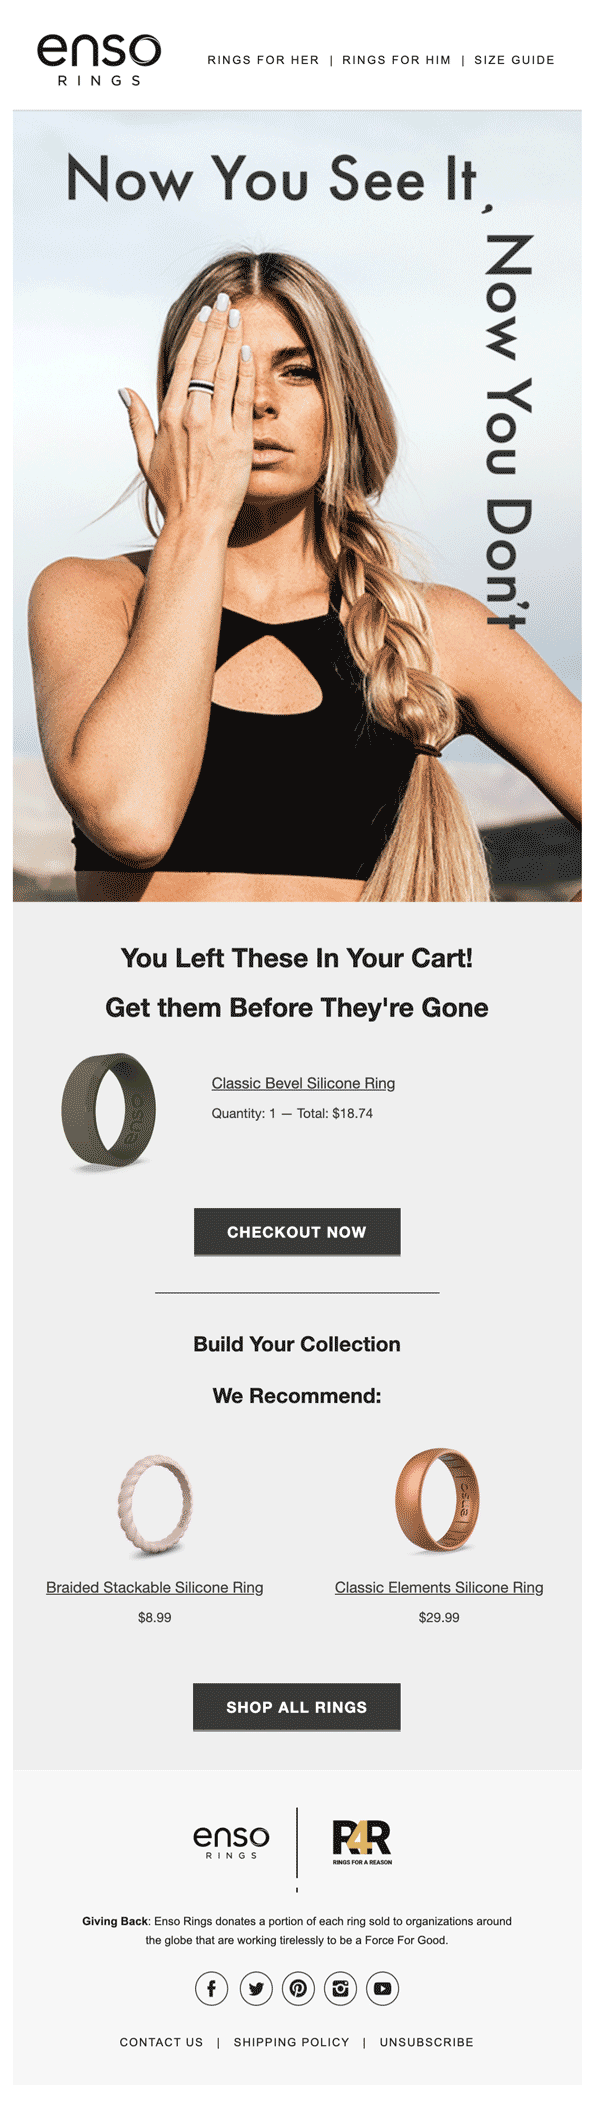 100 Abandoned Cart Email Examples Swipe File